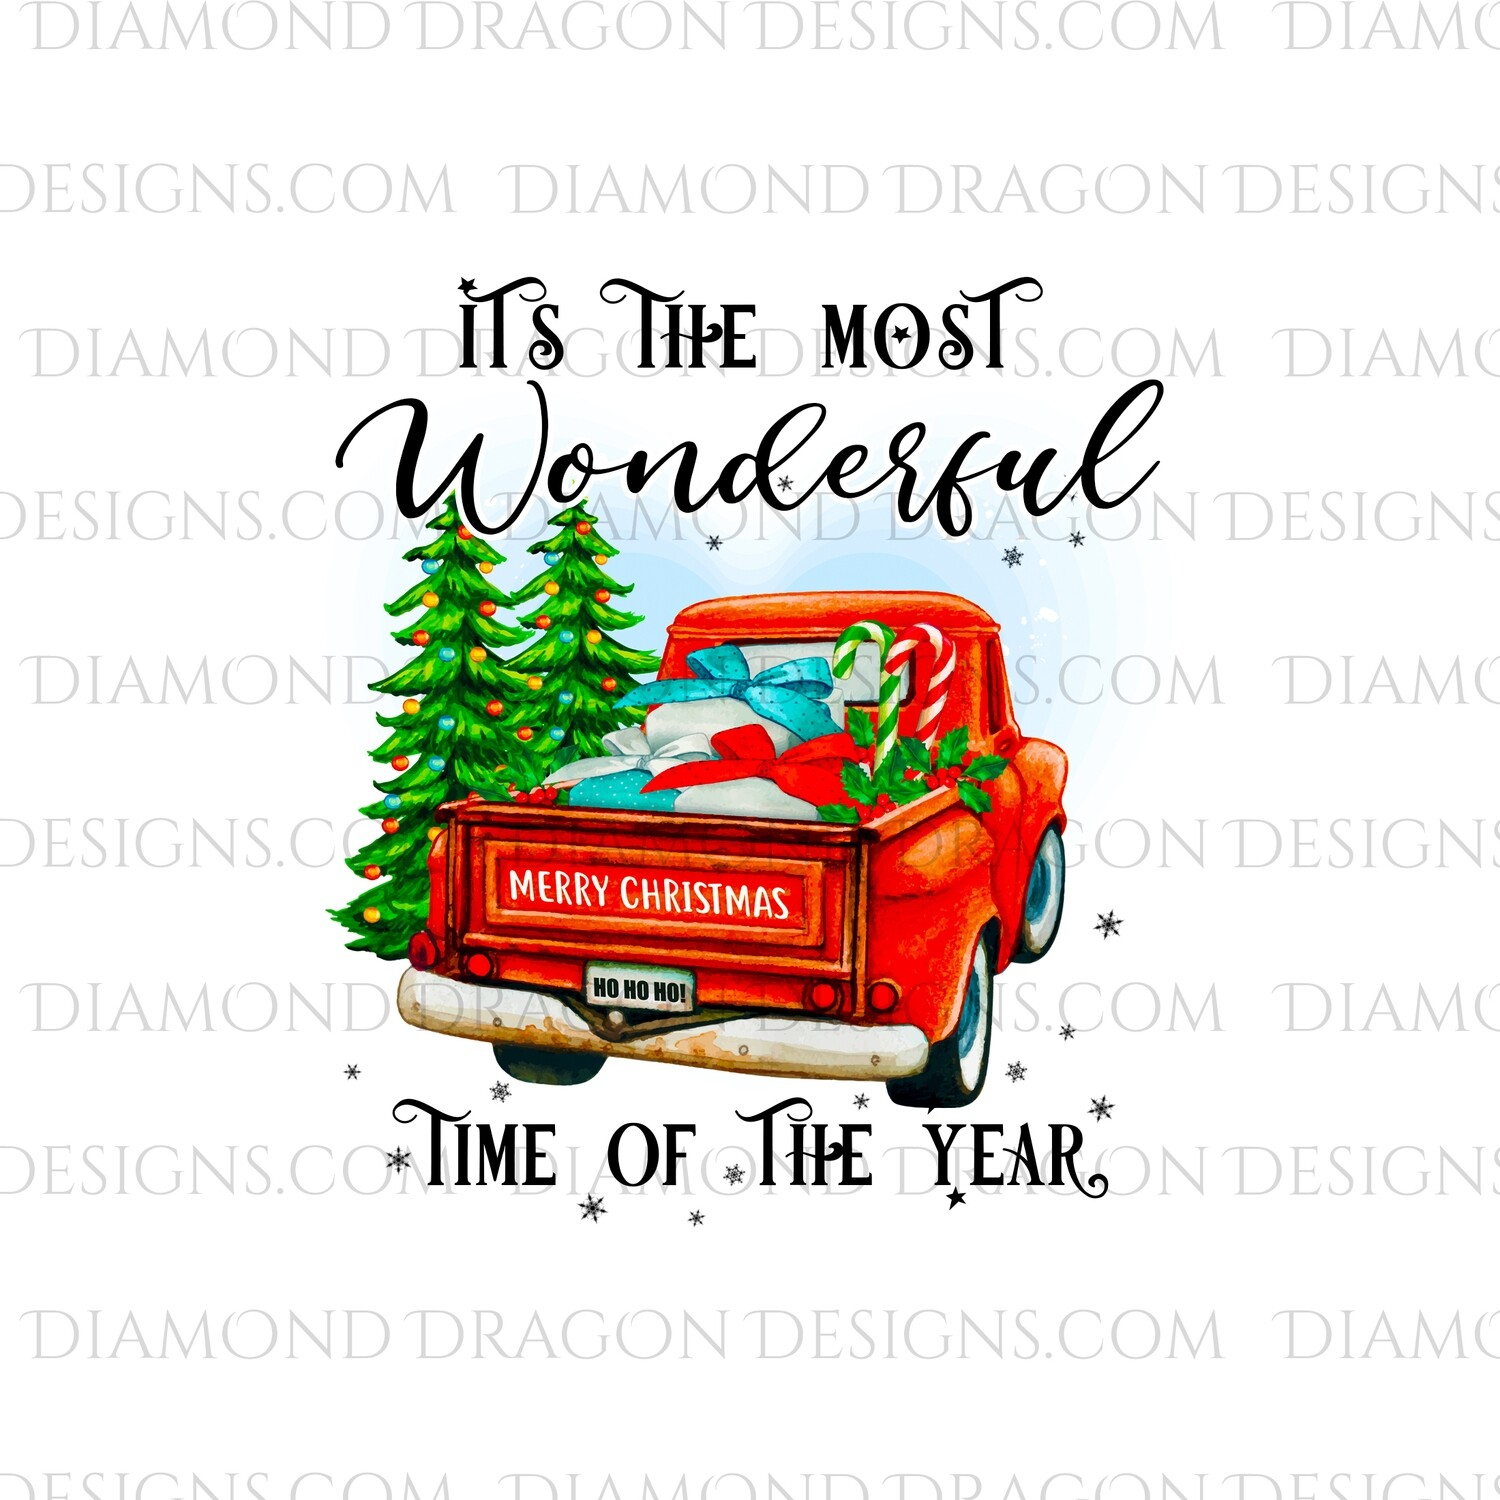 Christmas - Red Truck, Christmas Tree, It's the most wonderful time, Red Vintage Truck 5, Waterslide